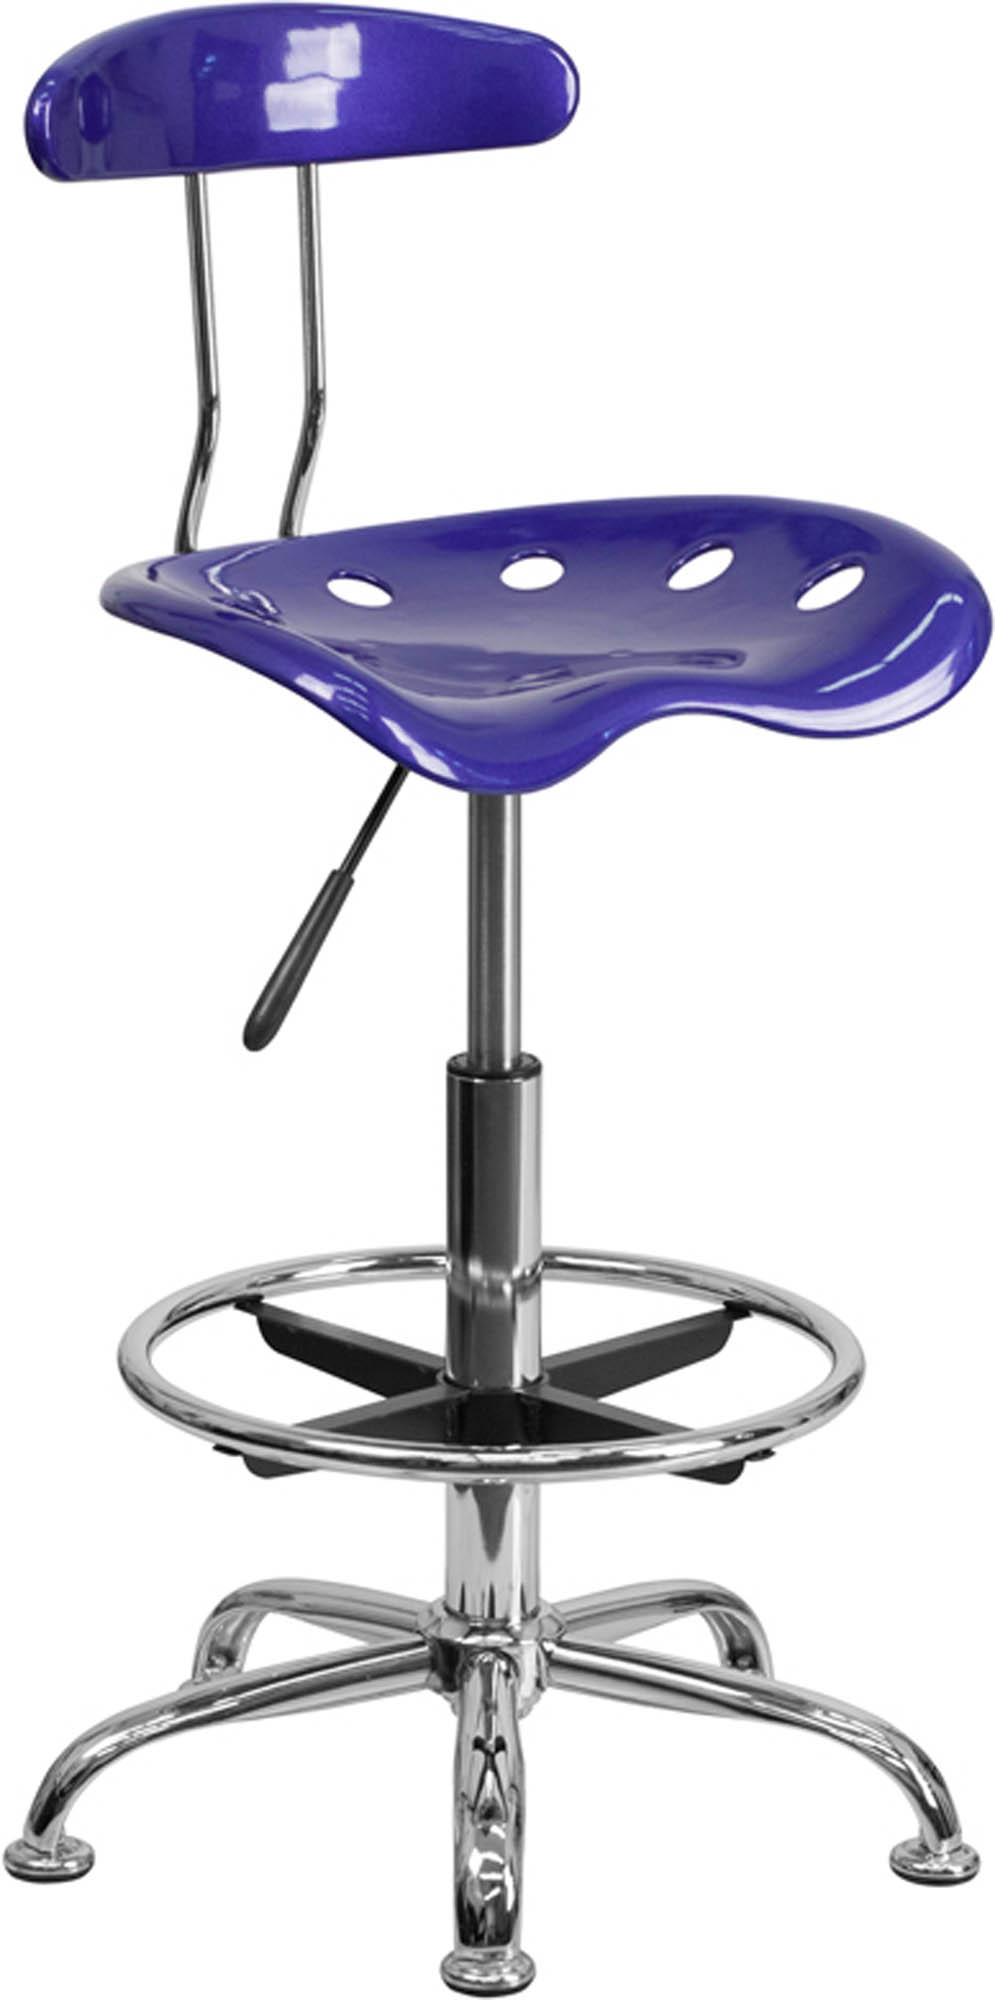 Offex LF-215-DEEPBLUE-GG Vibrant Deep Blue and Chrome Drafting Stool with Tractor Seat